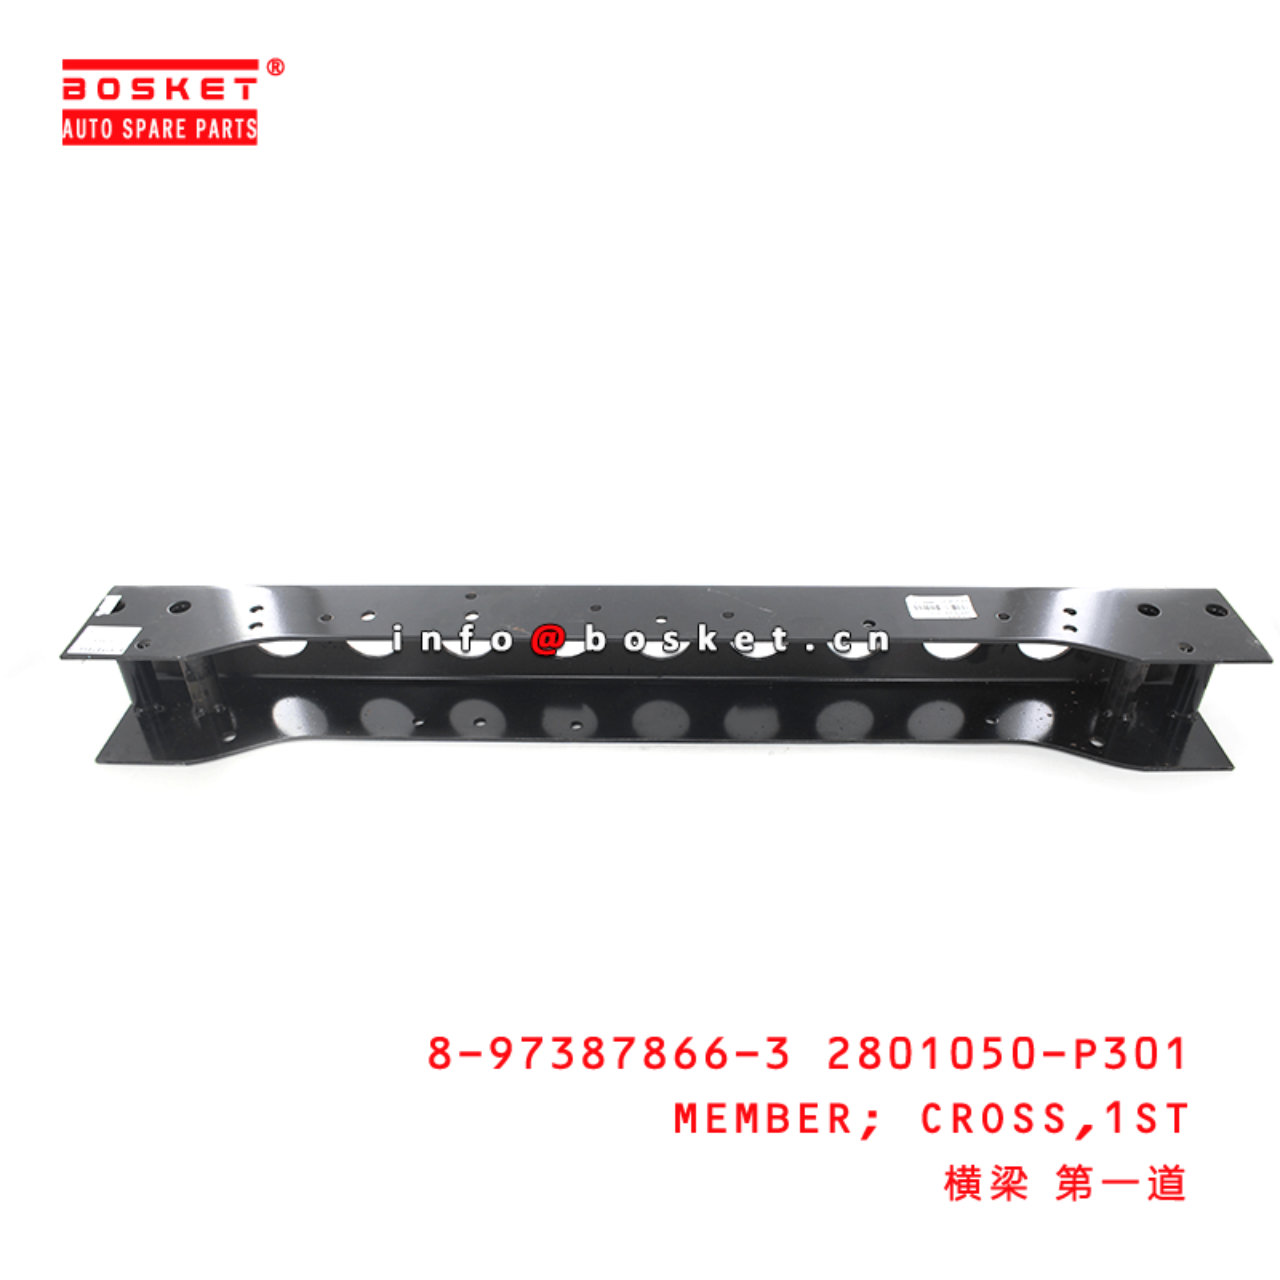 8-97387866-3 2801050-P301 First Cross Member 8973878663 2801050P301 Suitable for ISUZU 700P